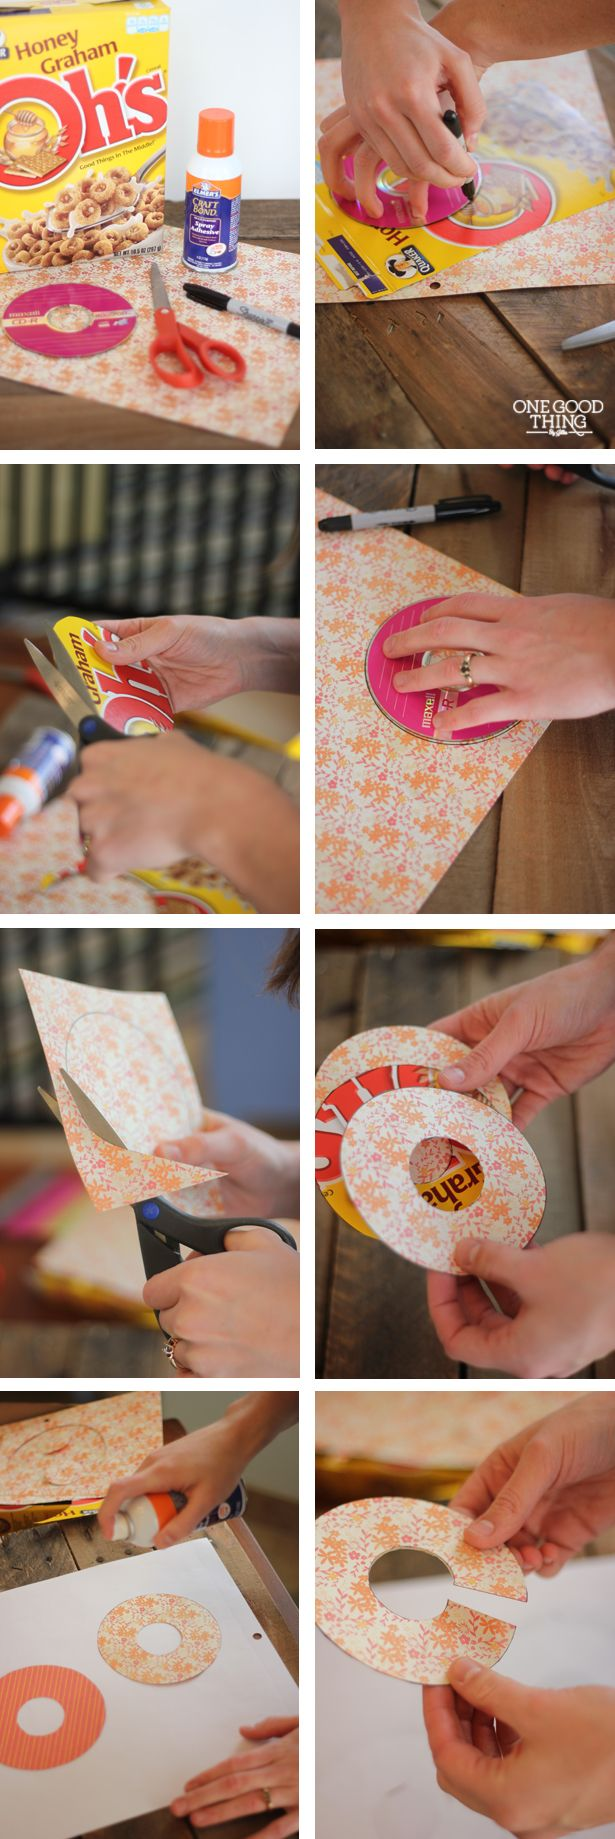 No more searching where to put back that black pair of pants because it's CLEARLY MARKED with these simple to make Closet Markers.  We made ours using an old cereal box, some scraps of scrapbook paper, some spray adhesive and a pair of scissors! Here's our photo tutorial: